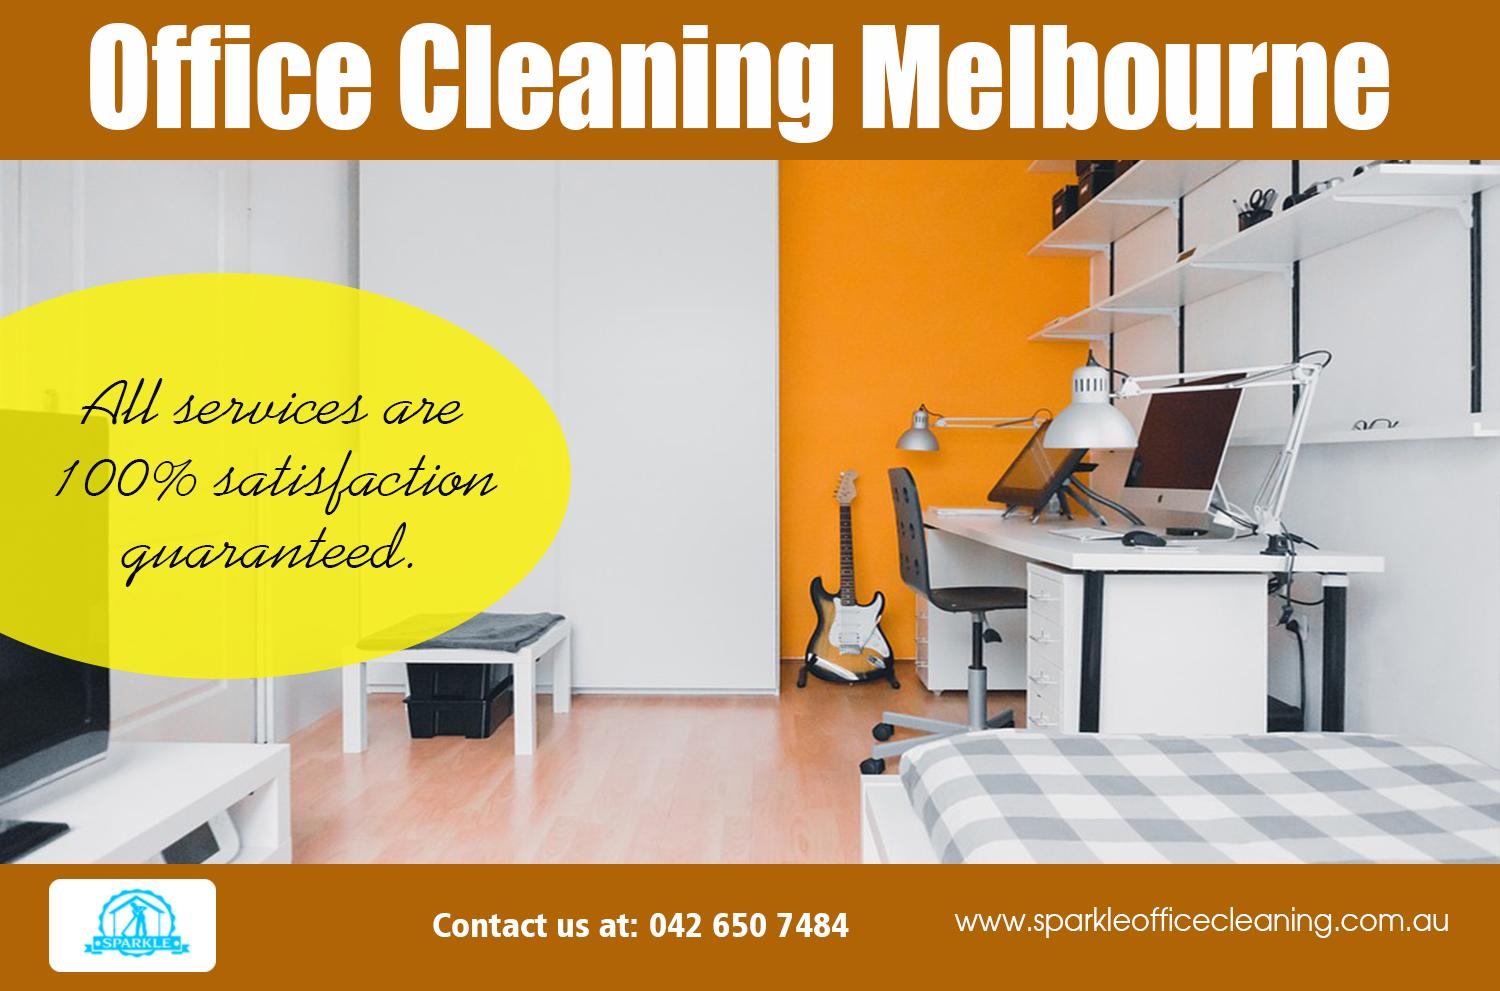 Office Cleaning in Melbourne | sparkleofficecleaning.com.au